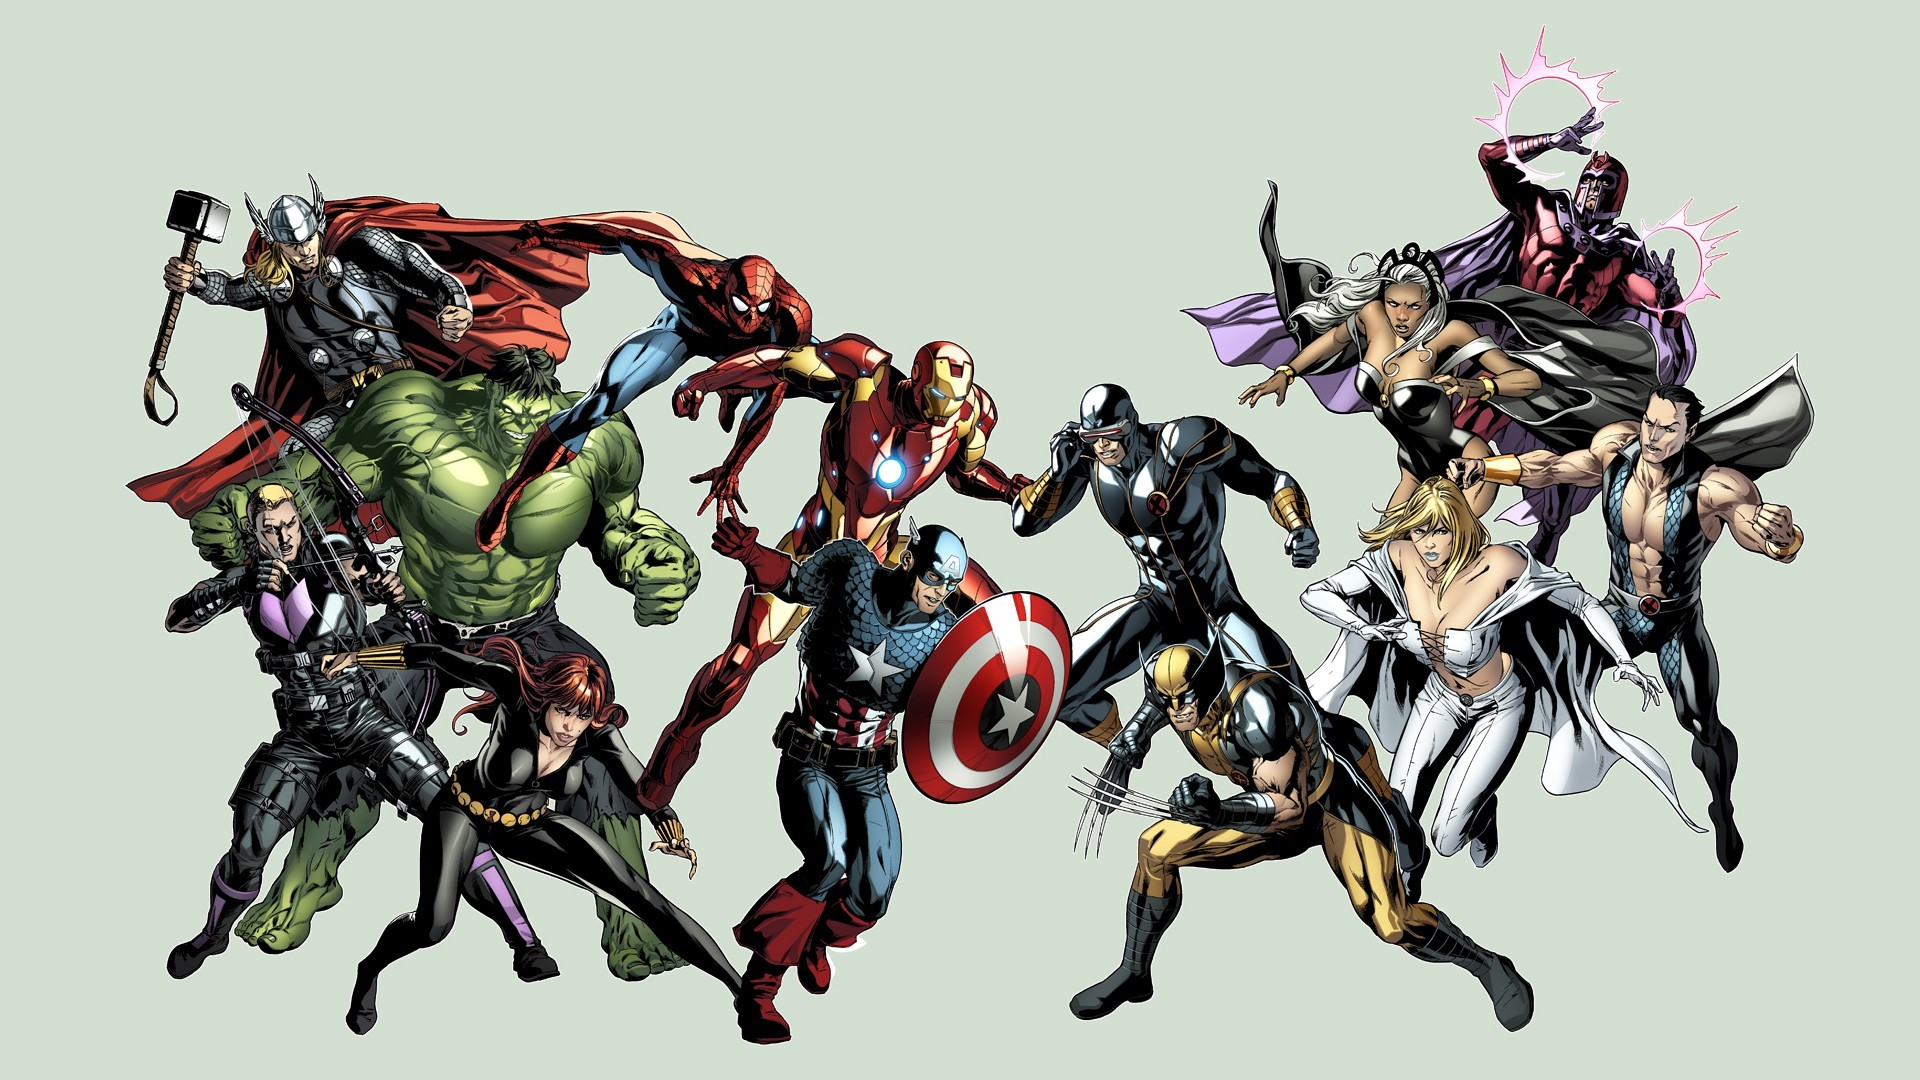 Hawkeye Cyclops Avengers Vs X Men Storm Comics Wallpaper